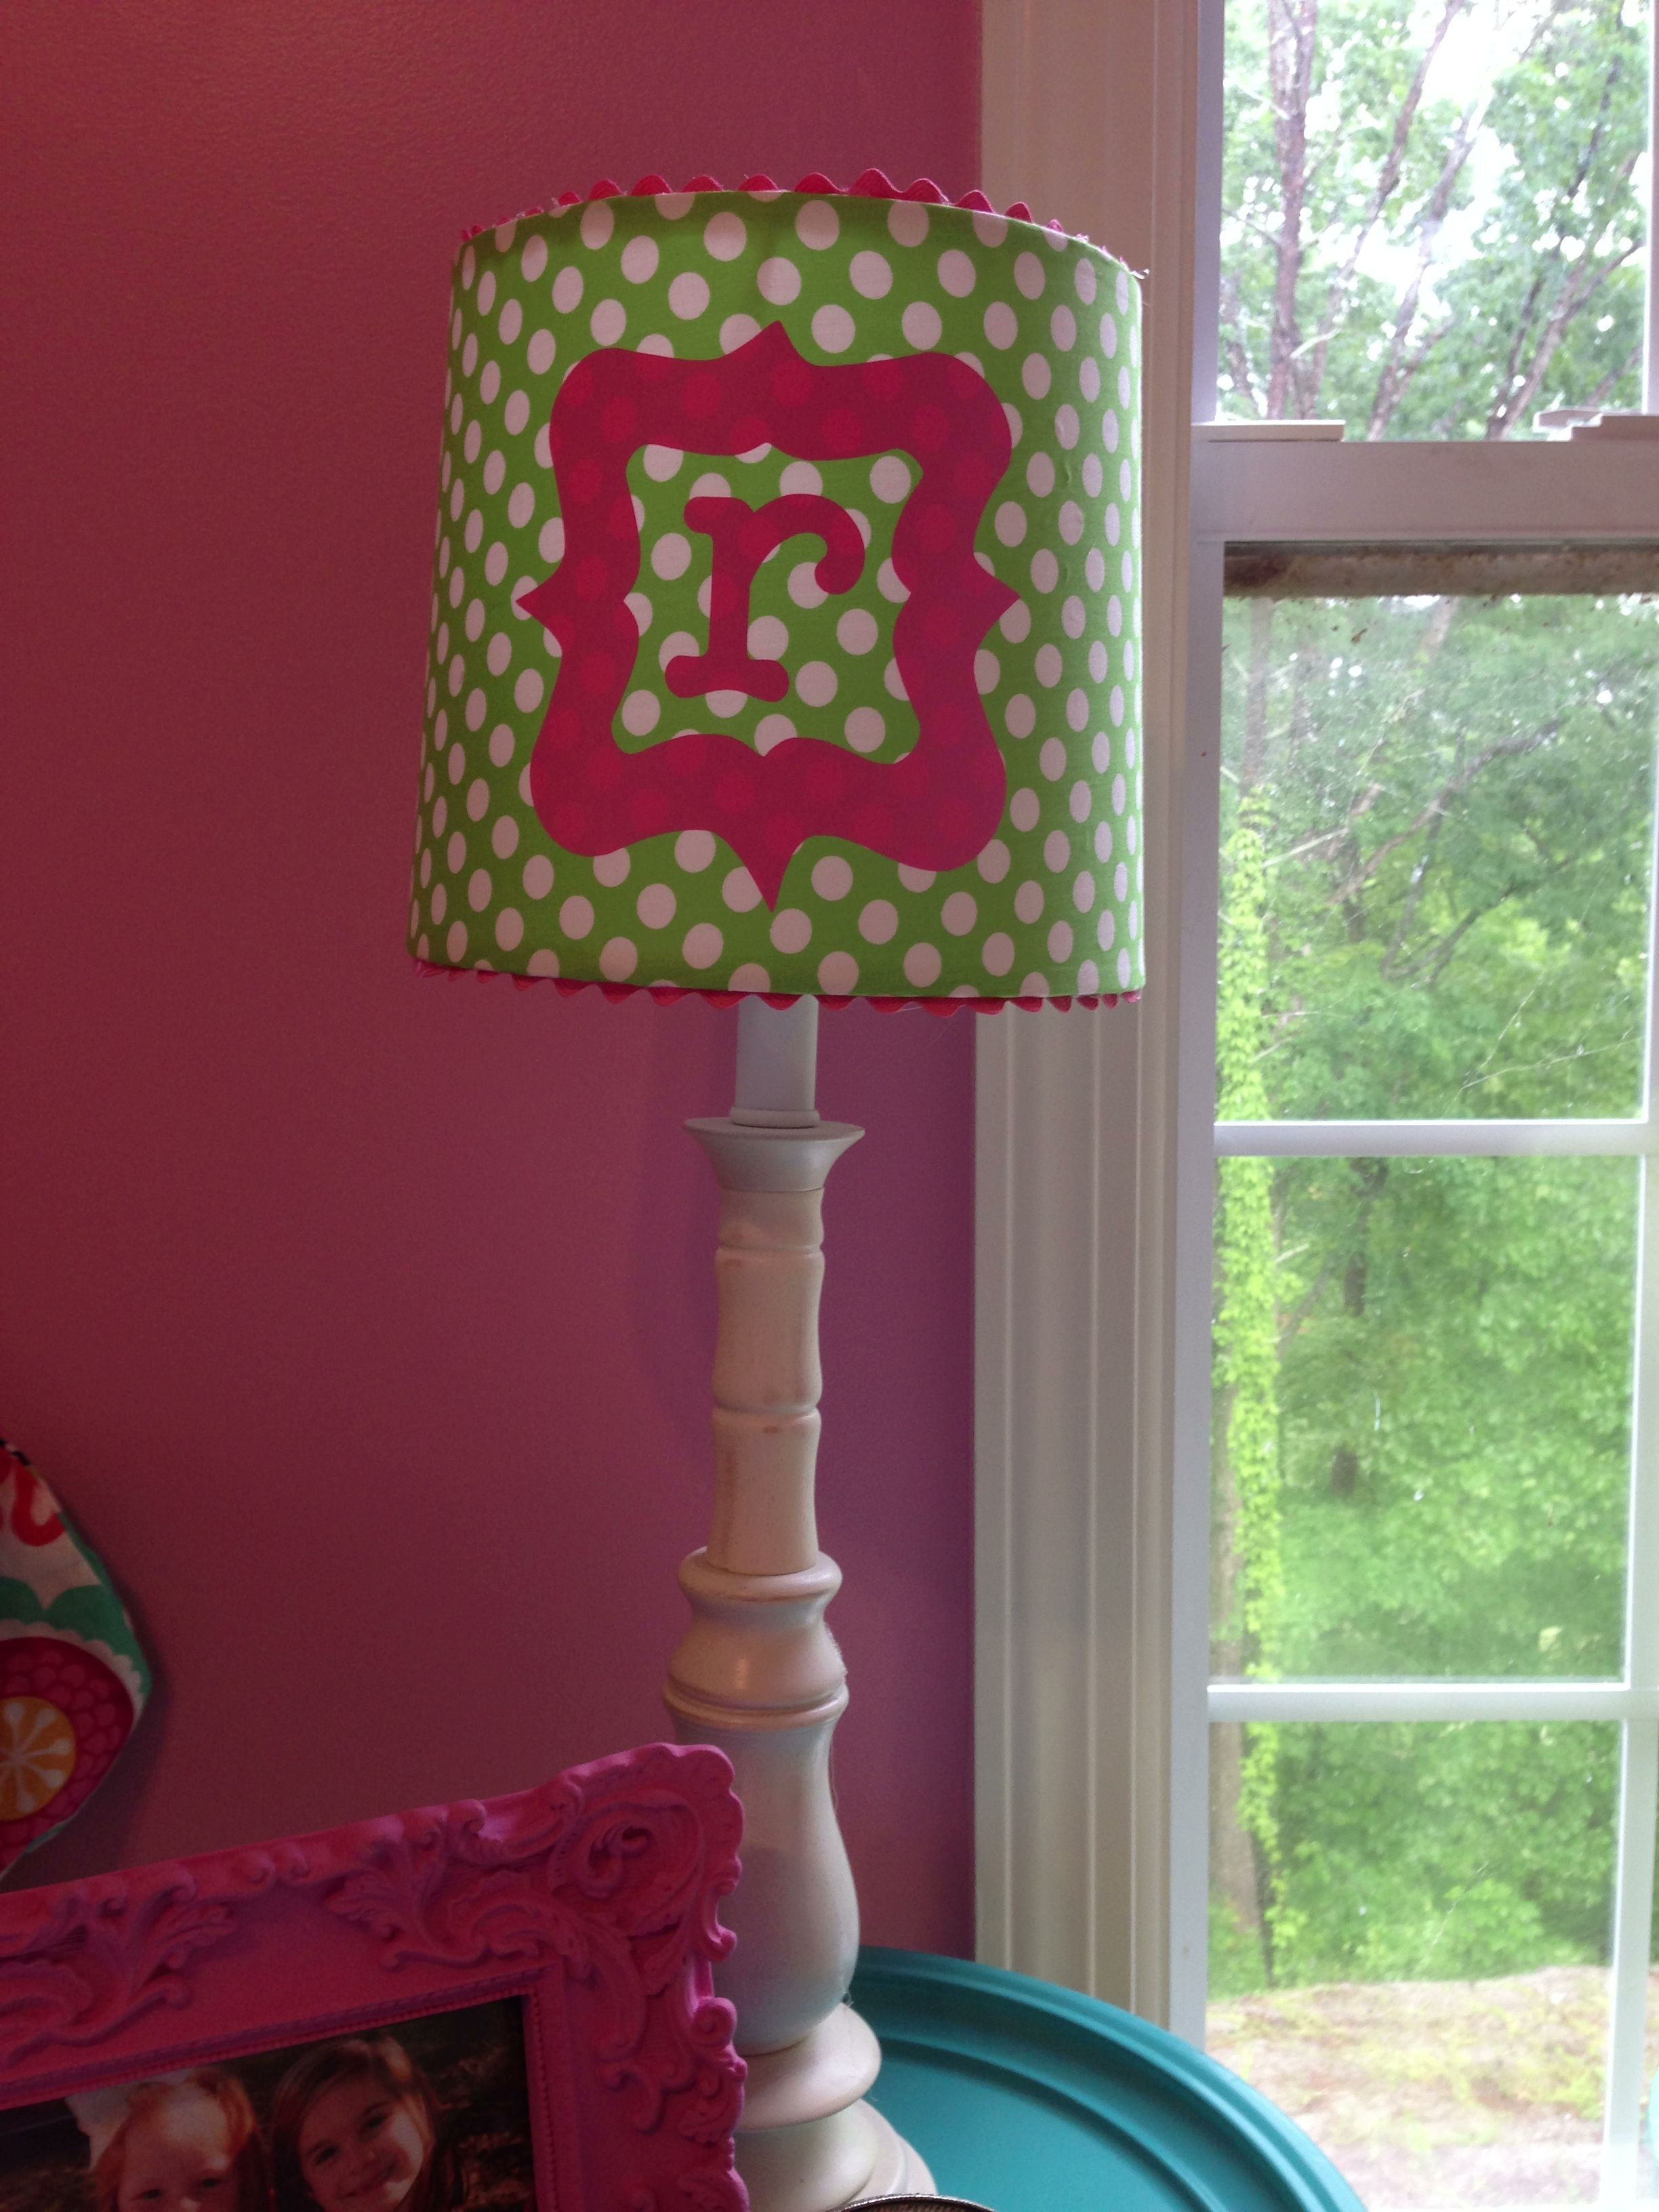 Hobby Lobby Lamp Shades Stunning Self Adhesive Lamp Shade From Hobby Lobby With A Vinyl Design From Inspiration